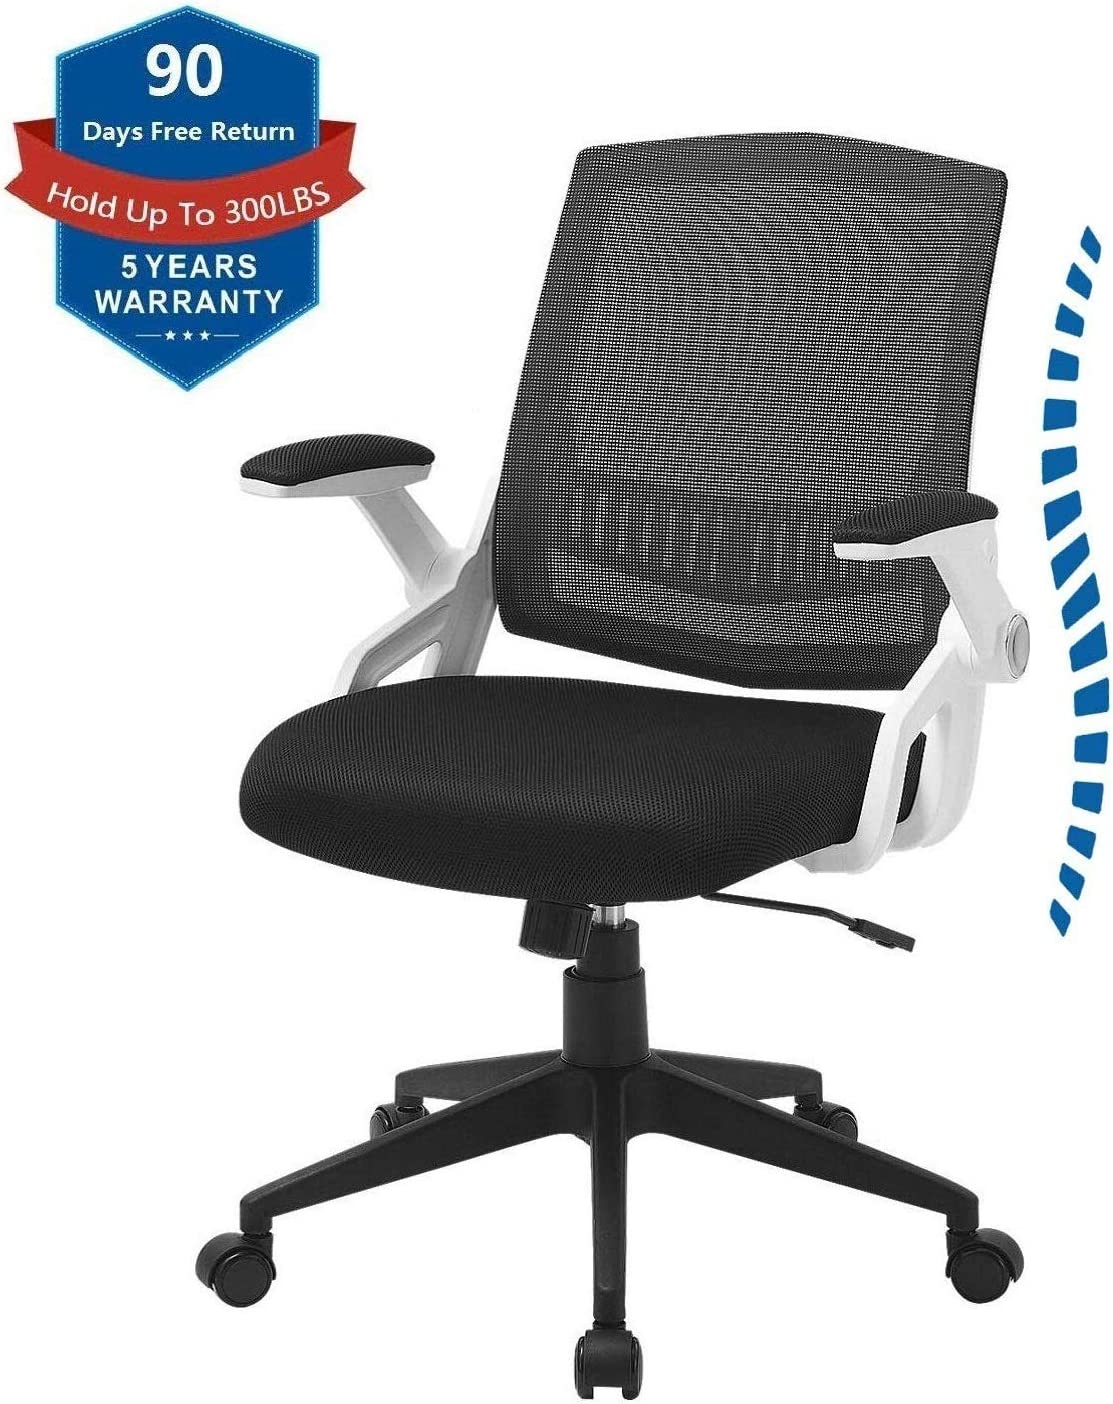 ZLHECTO Ergonomic Office Chair, Mid Back Computer Desk Chairs with Massy Cushion and Flip-up Arms, Swivel Task Chairs – Agile Height Adjustment, Load Up to 300LBS, Breathable Mesh Chairs